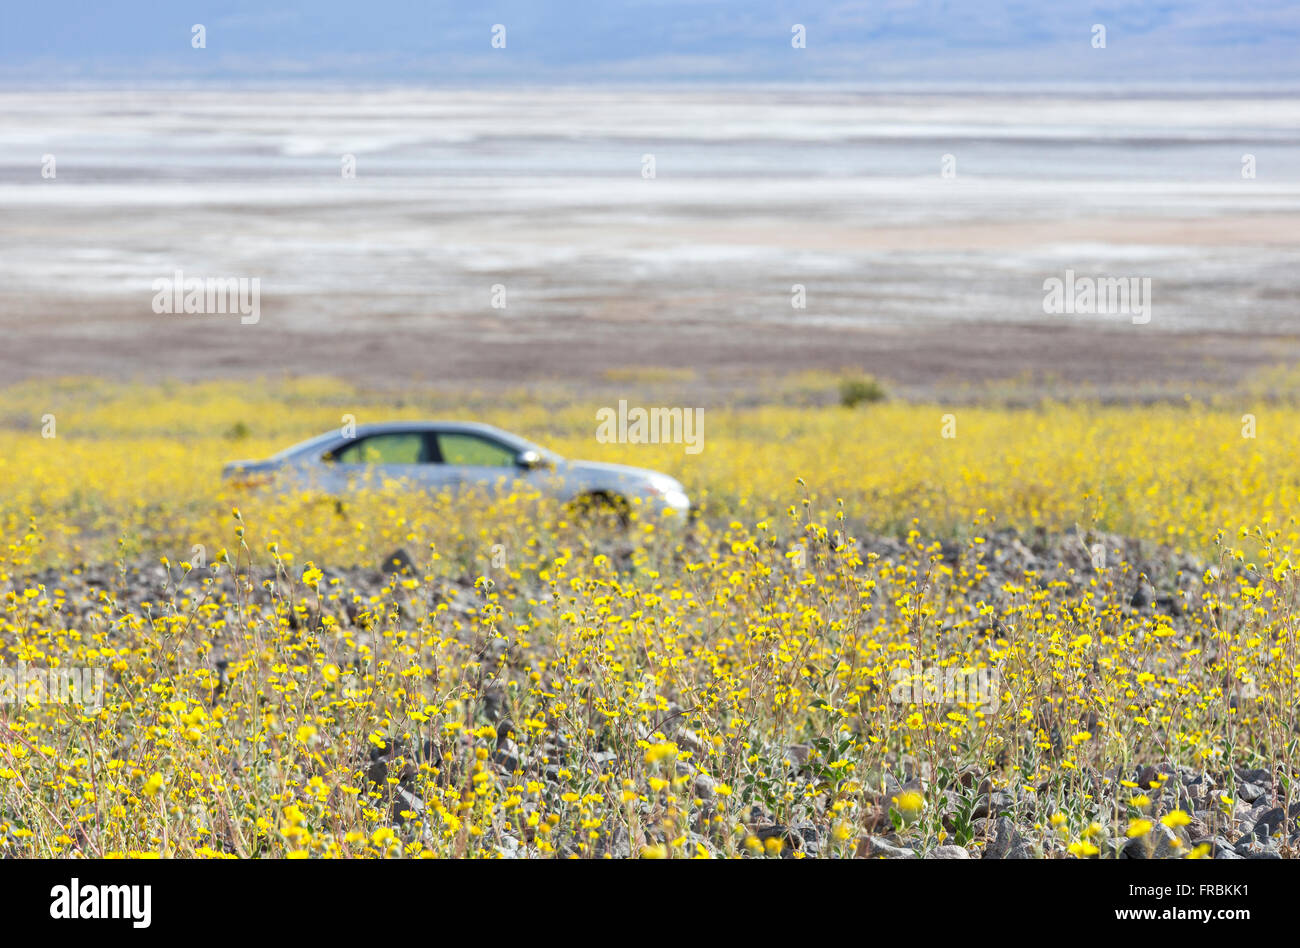 Super bloom of desert gold sunflowers (Geraea canescens) along Badwater road in Death Valley National Park, California. Stock Photo